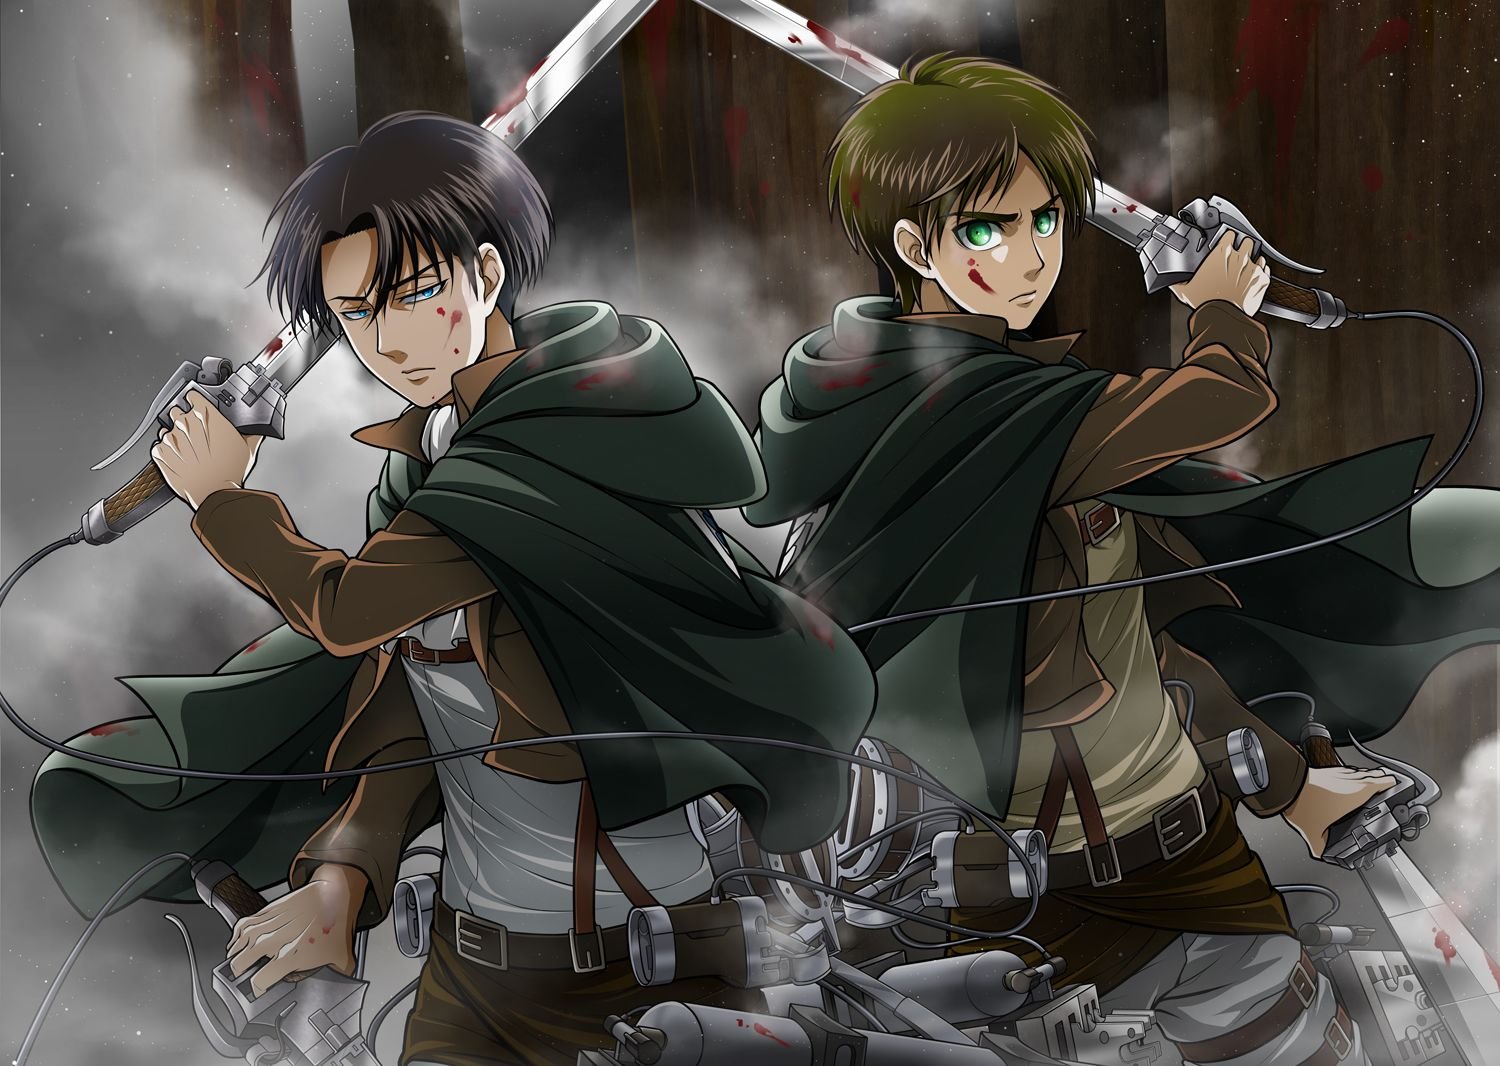 Shingeki no Kyojin by 33 Attack on titan english, Anime